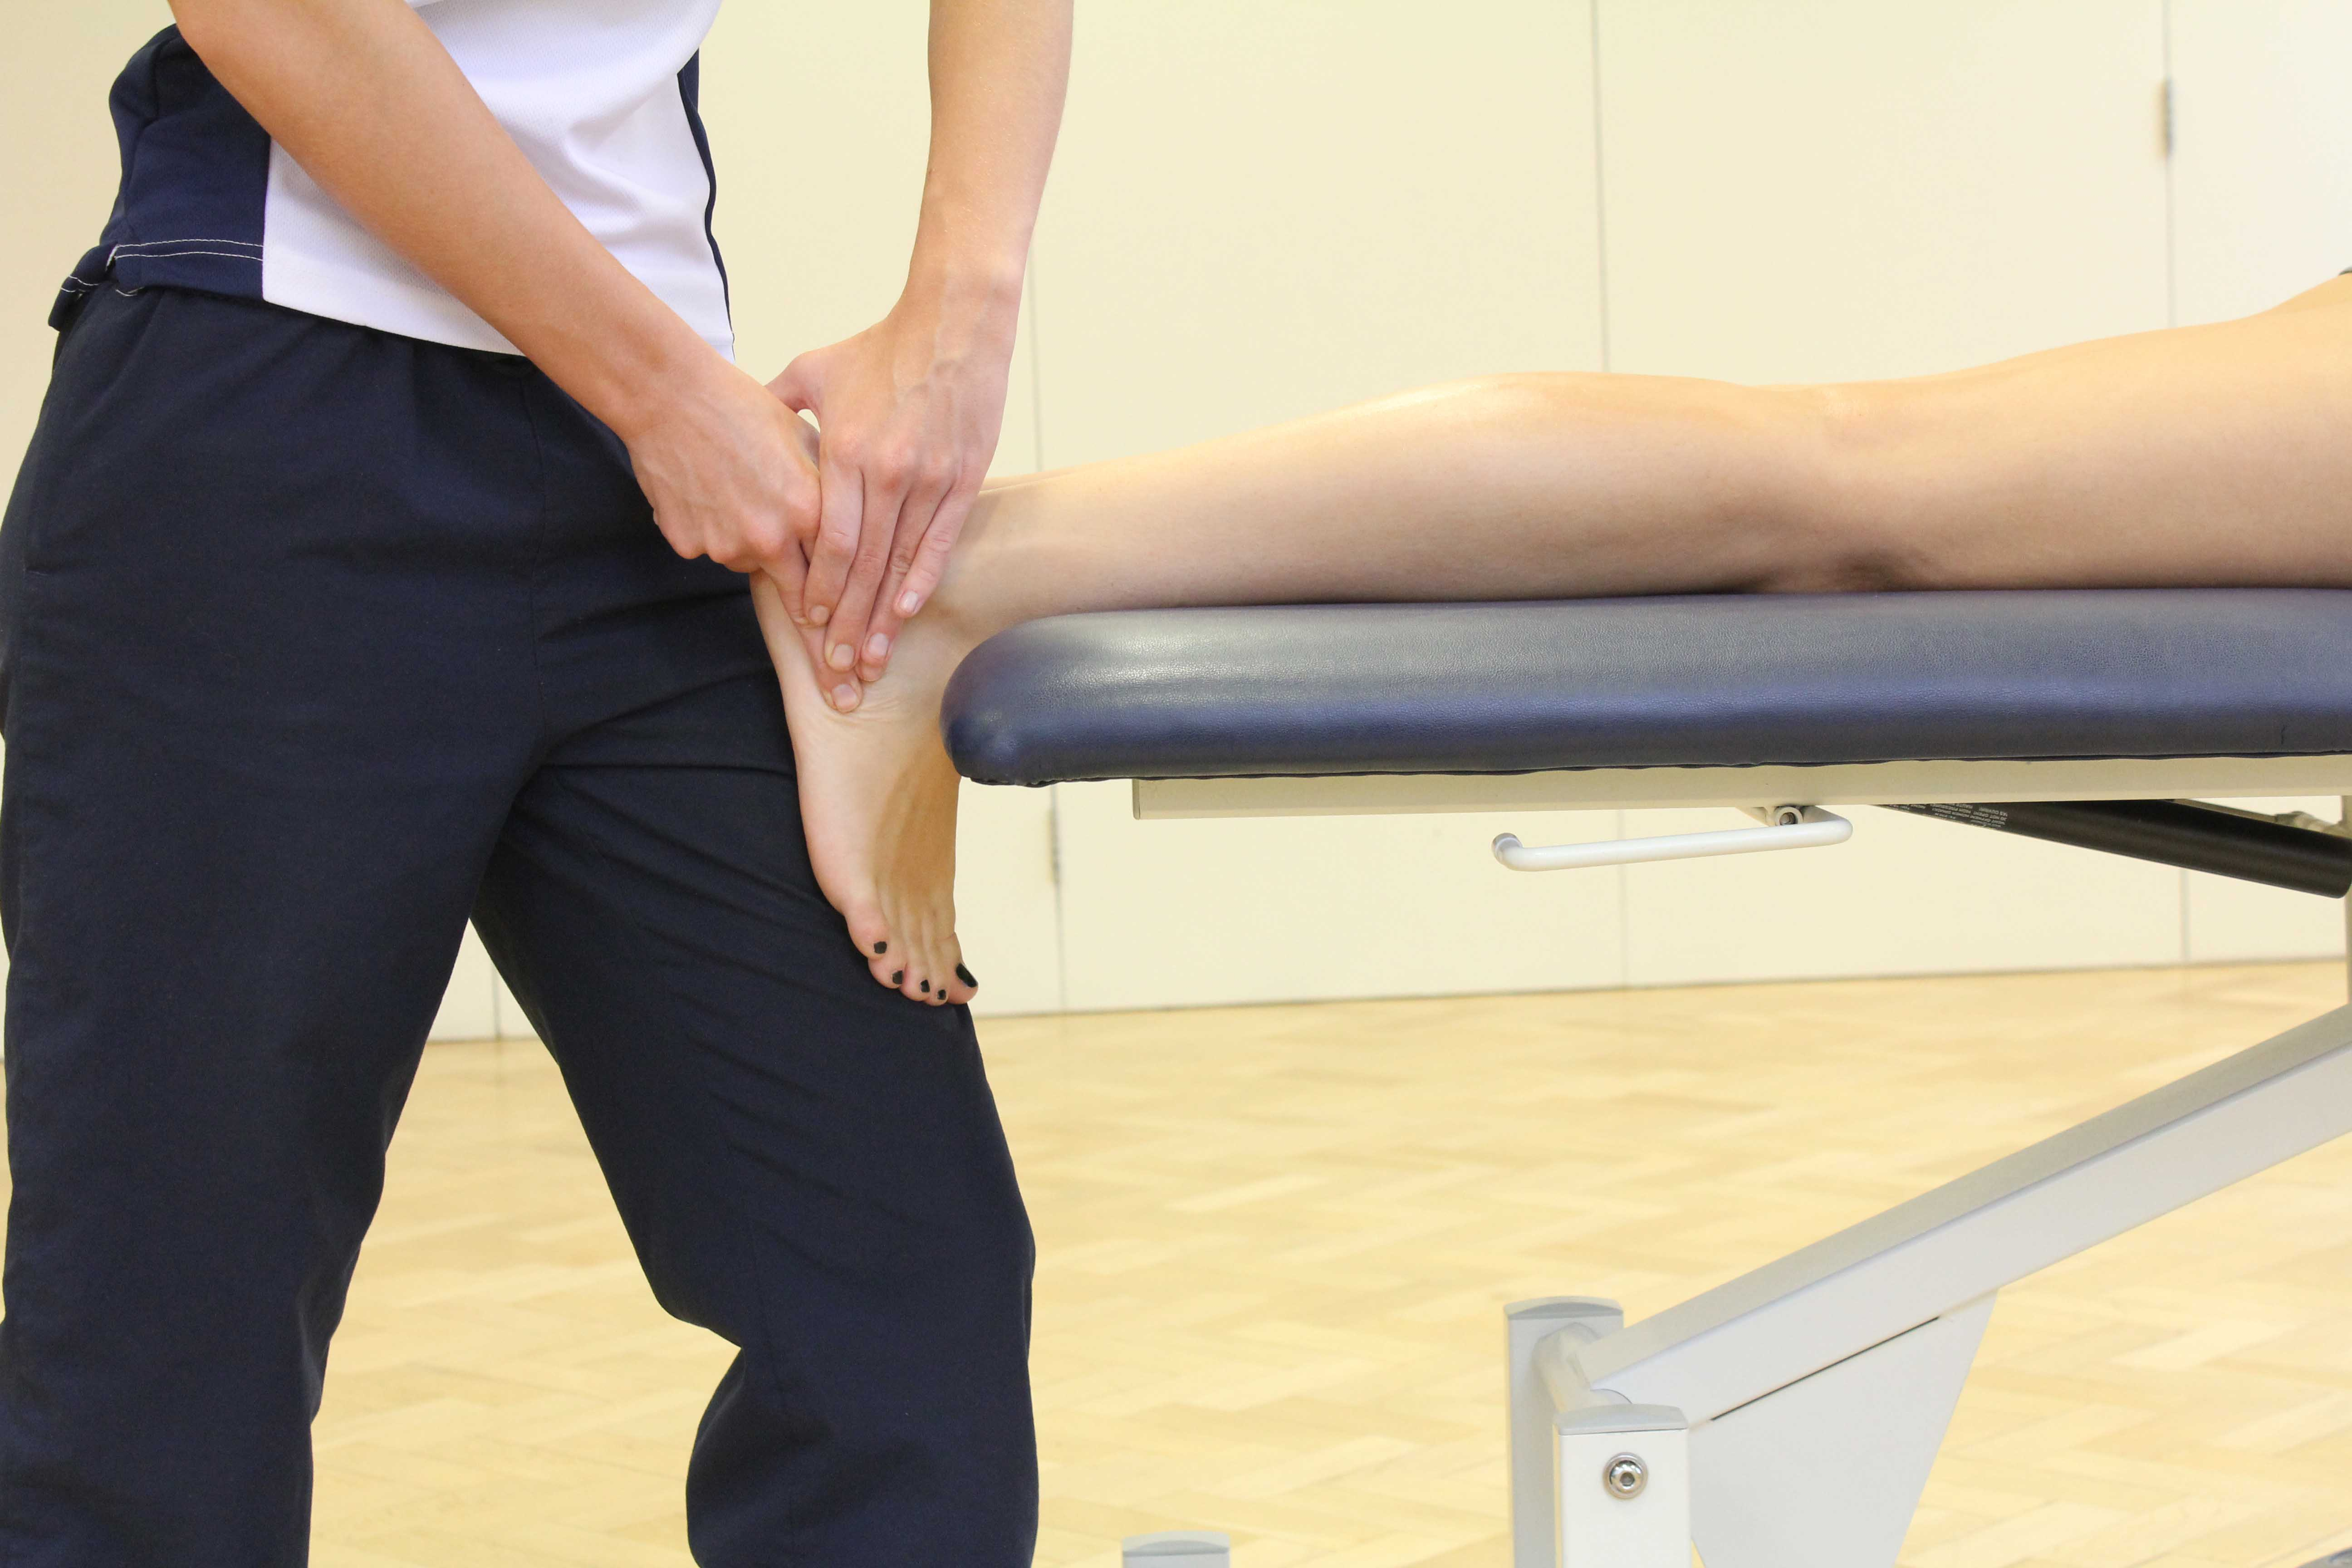 Soft tissue friction massage of the ankle ligaments